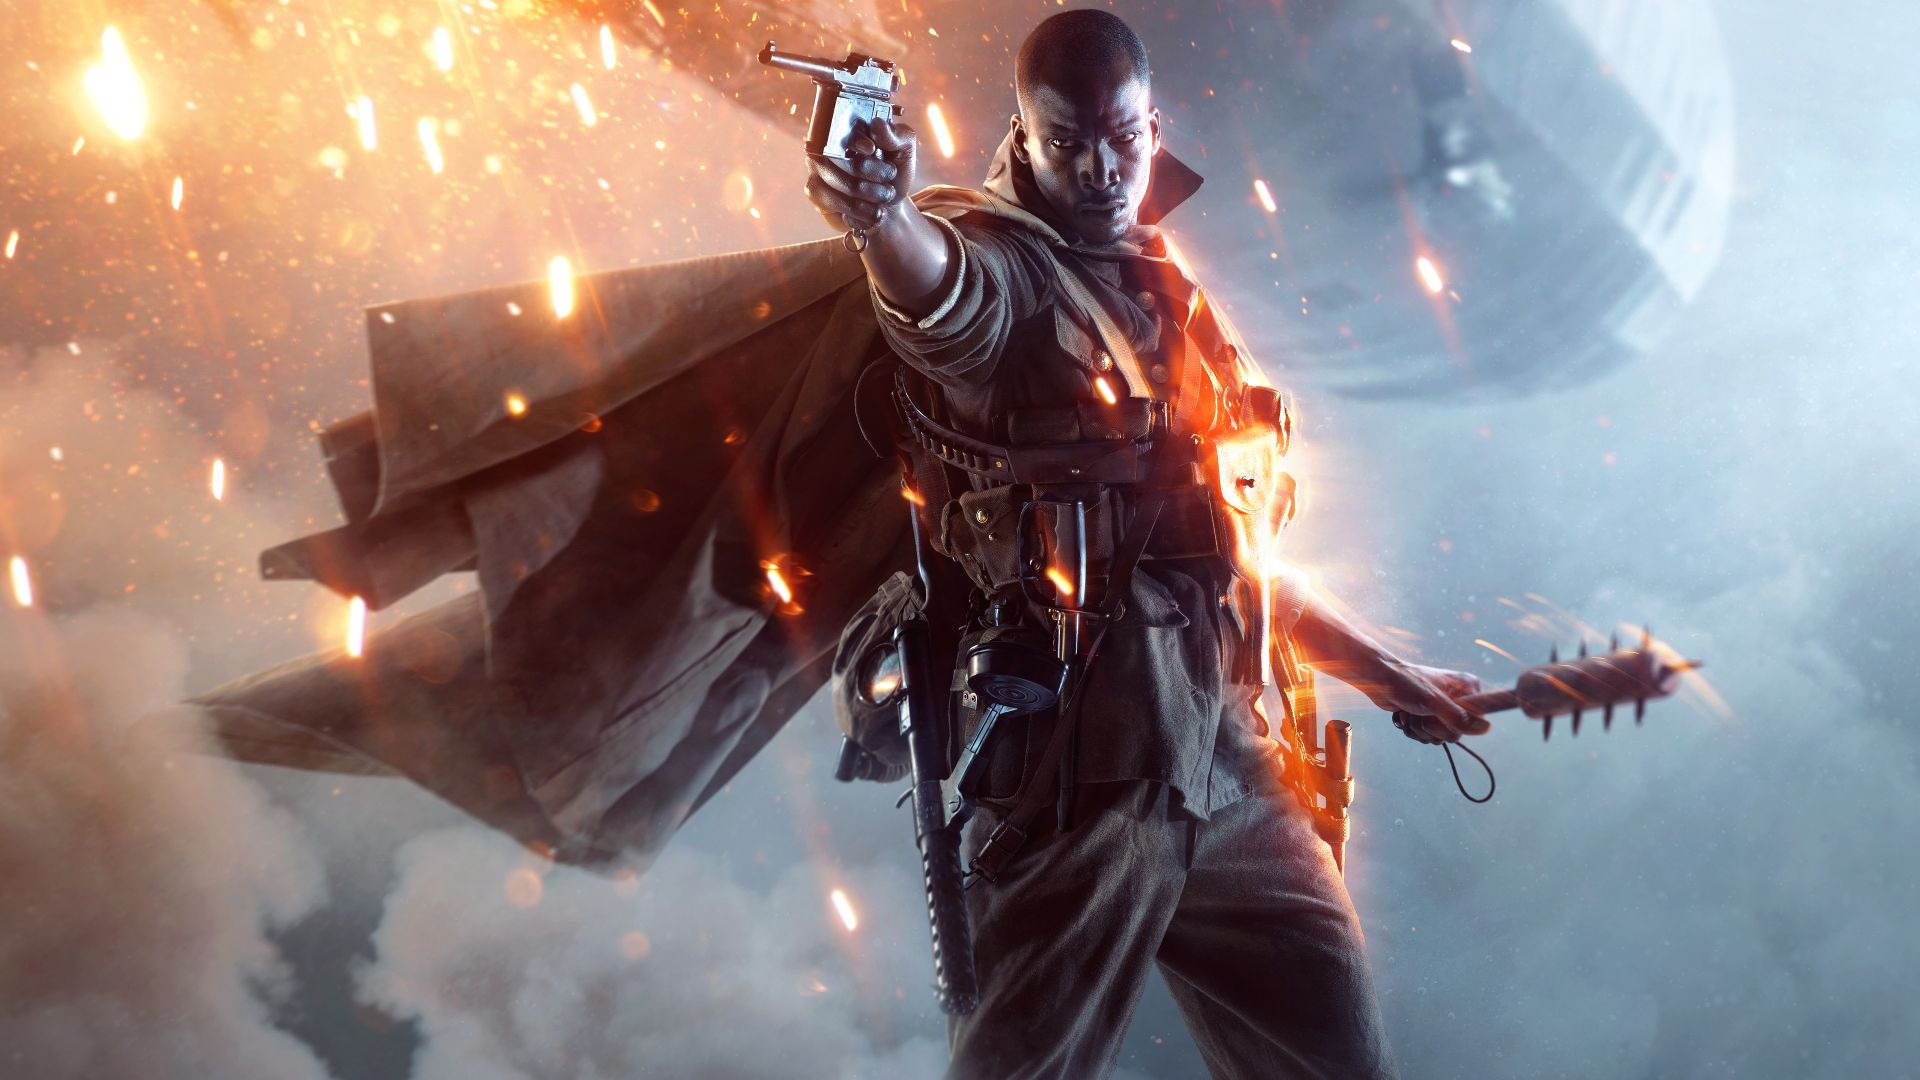 EA is training AI agents to play Battlefield 1